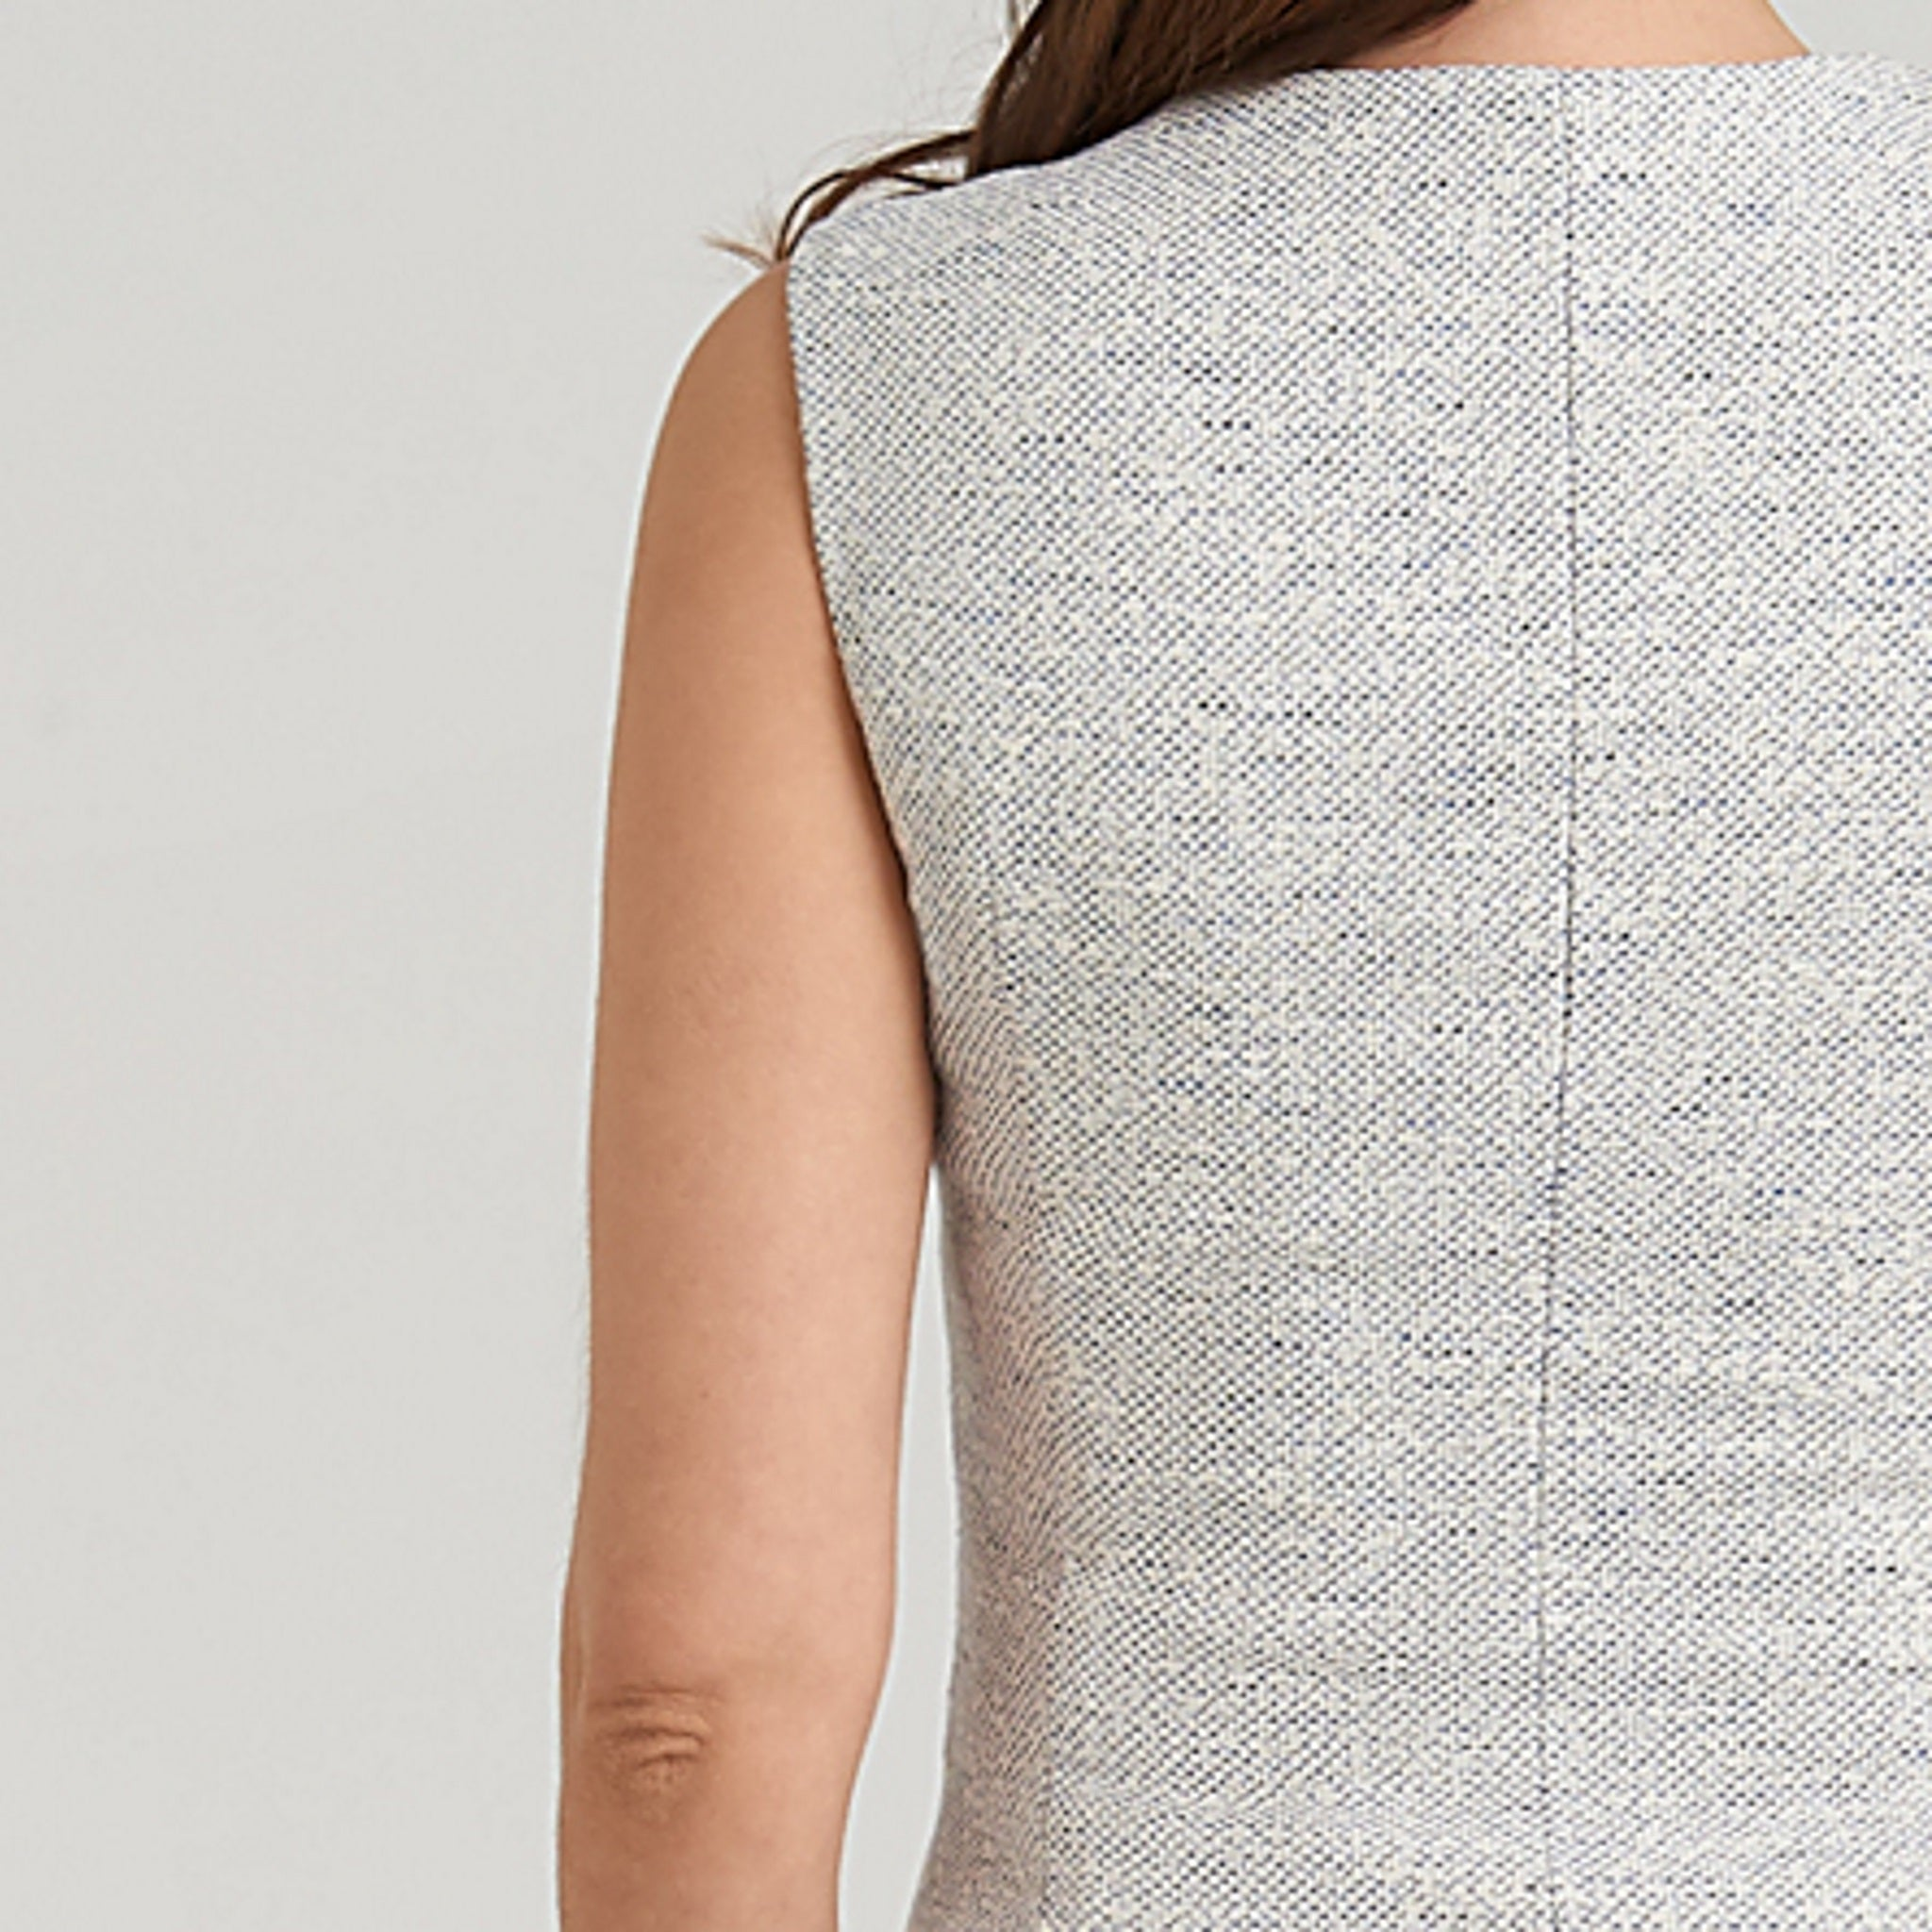 Breathable peplum top, limited edition white and blue tweed